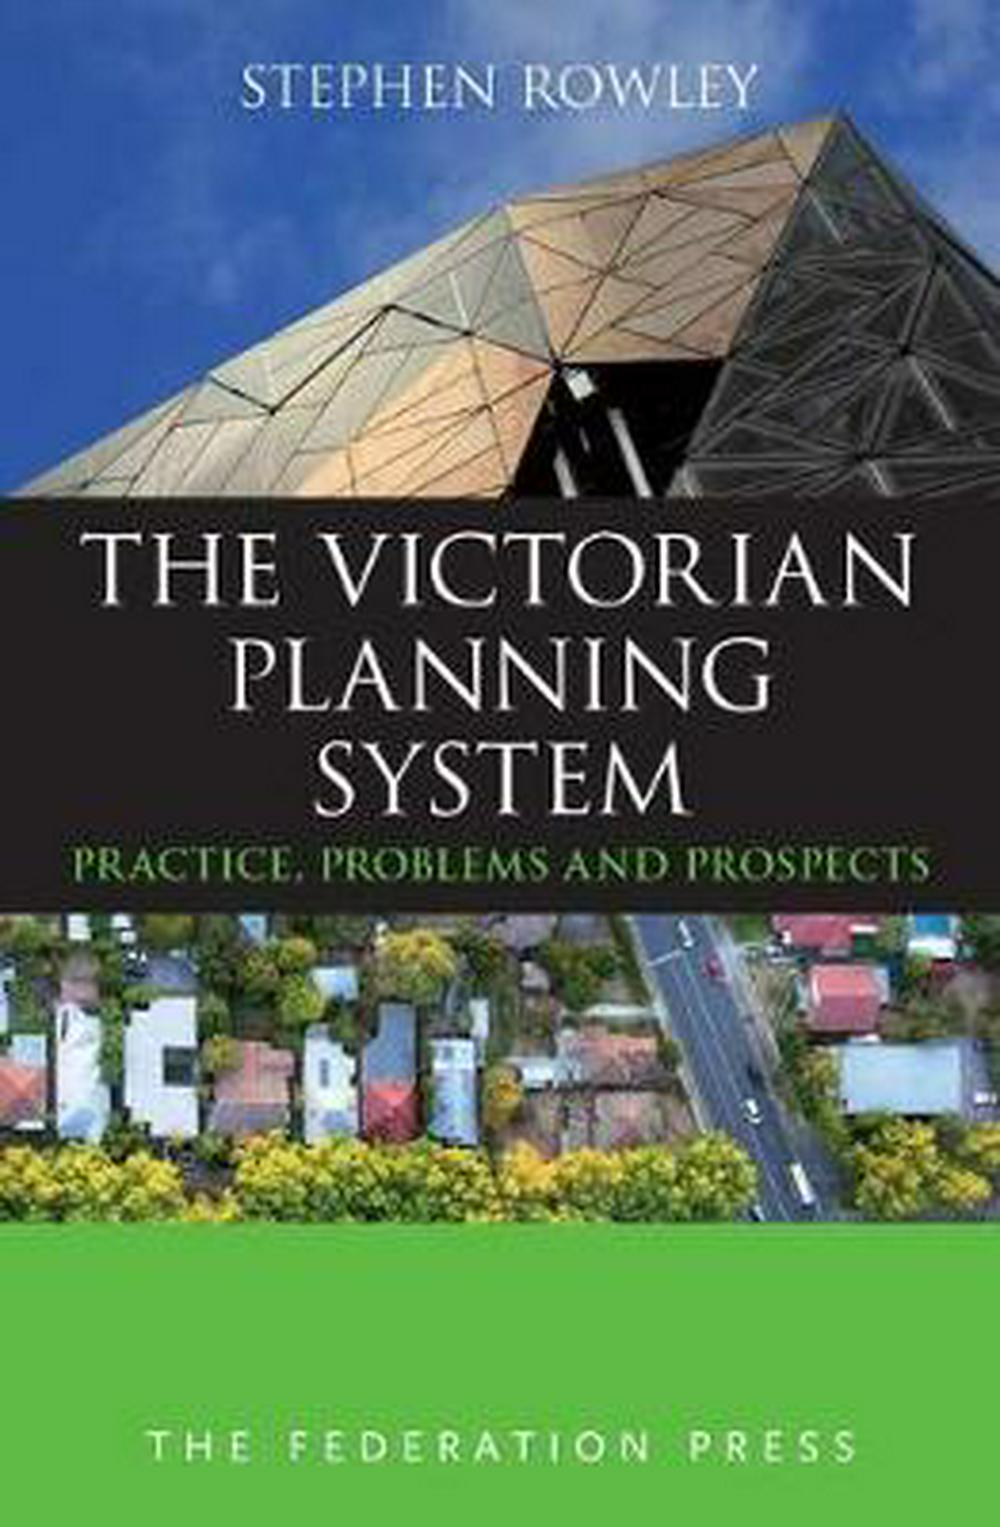 The Victorian Planning System